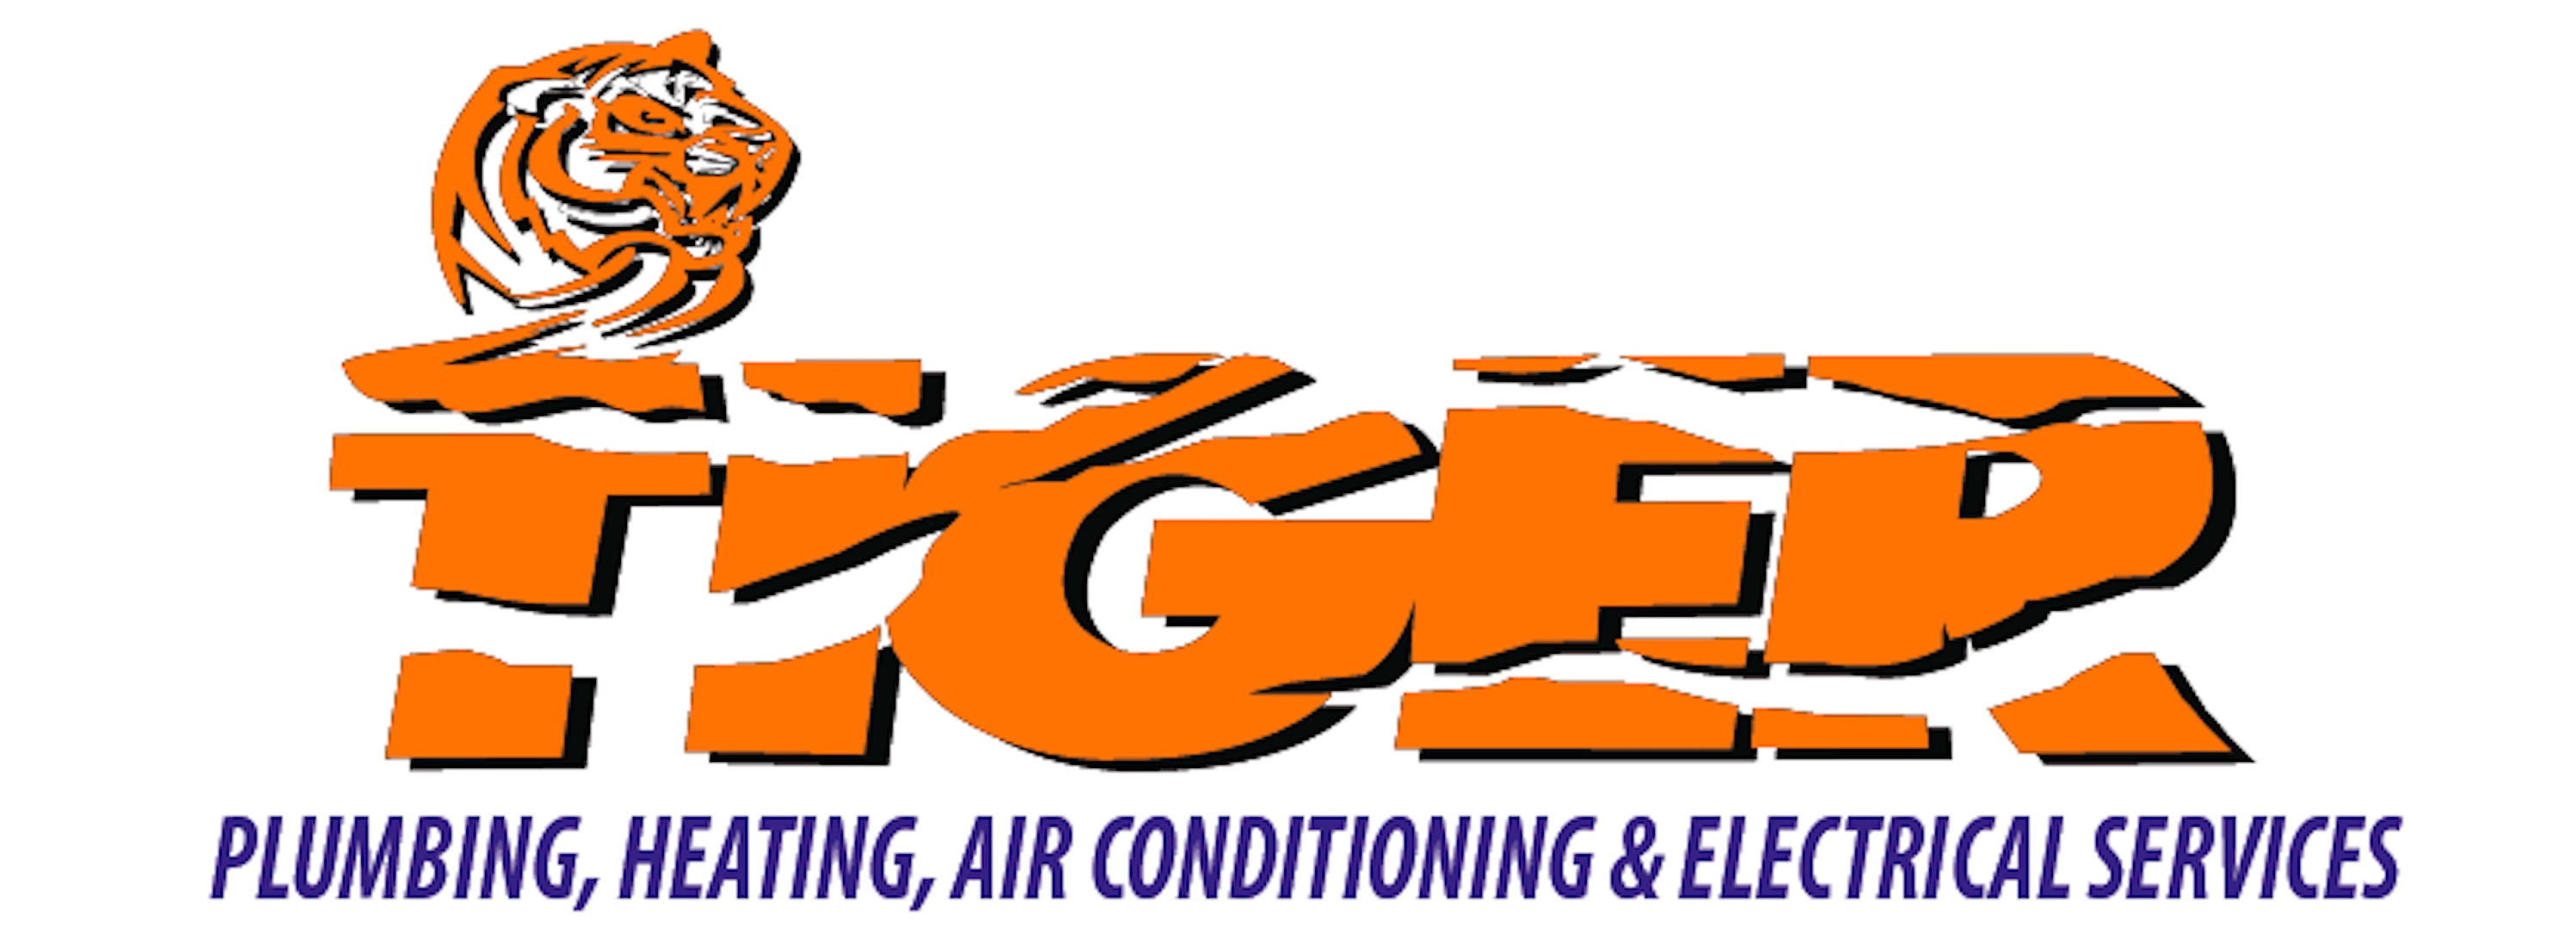 e4,Tiger Plumbing, Heating, Air Conditioning & Electric Services (Bronze)